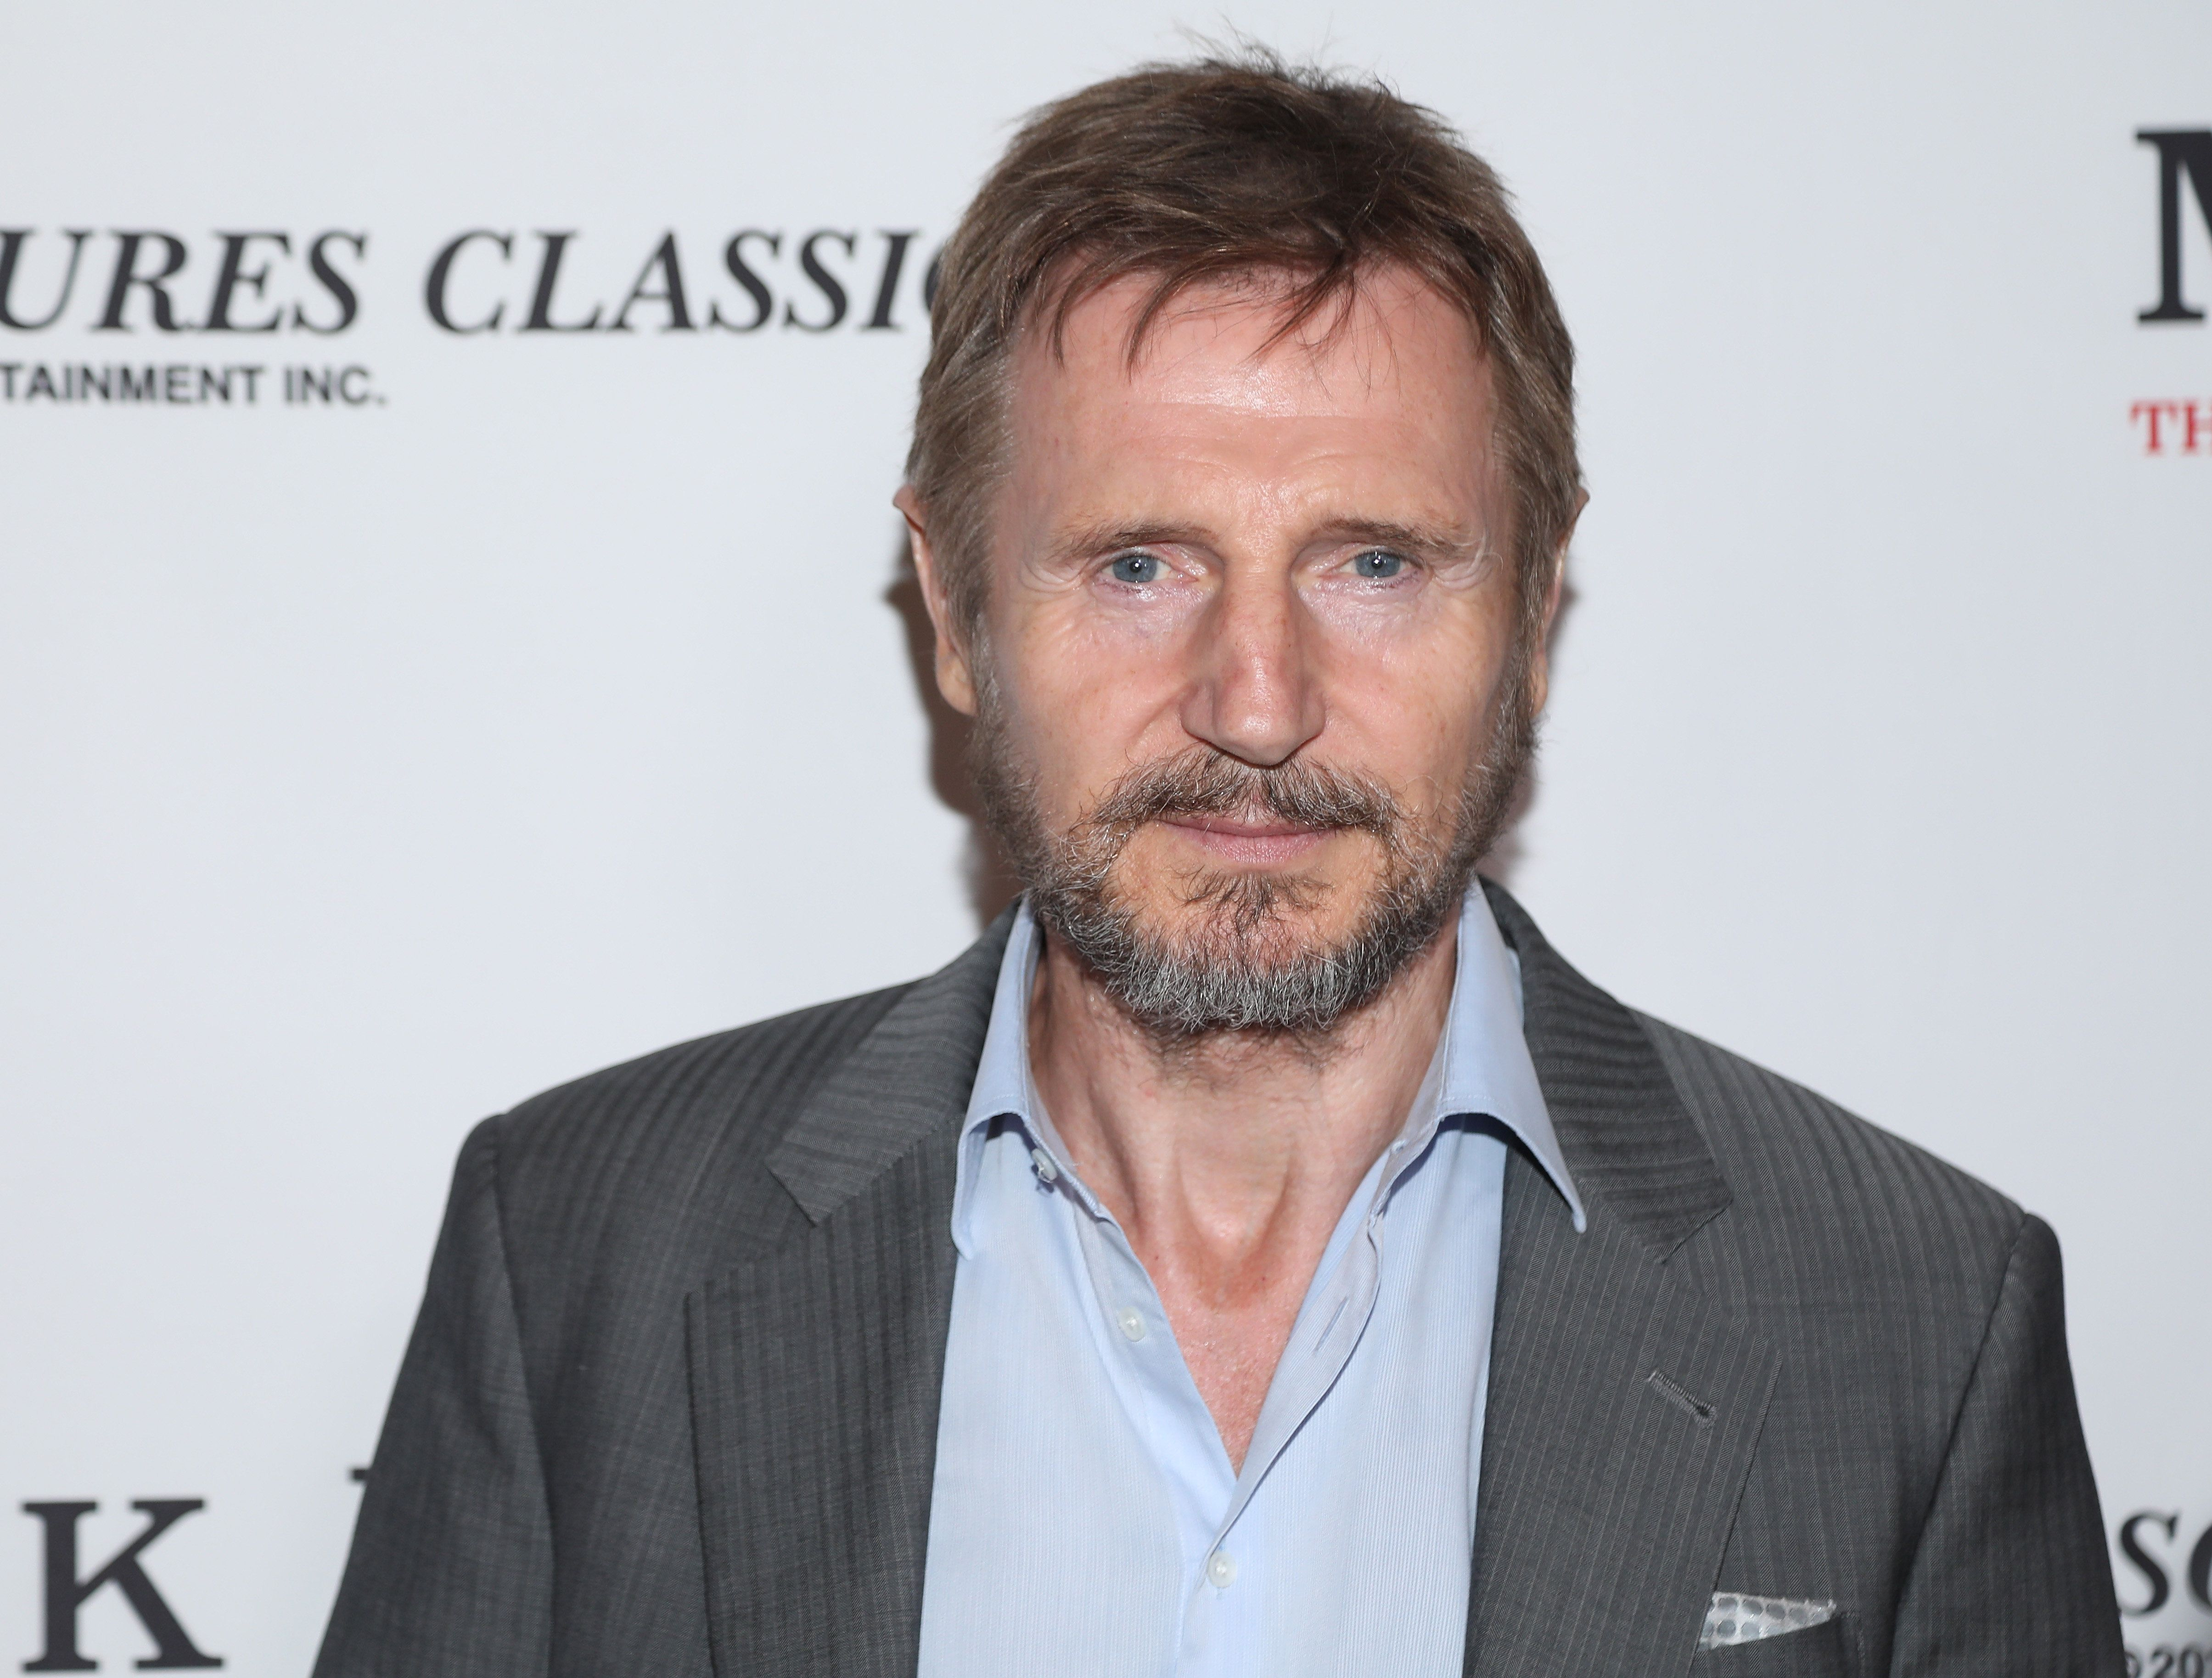 BEVERLY HILLS, CA - SEPTEMBER 26:  Actor Liam Neeson attends the premiere of Sony Pictures Classics' 'Mark Felt: The Man Who Brought Down The White House' at Writers Guild Theater on September 26, 2017 in Beverly Hills, California.  (Photo by Jerritt Clark/Getty Images)